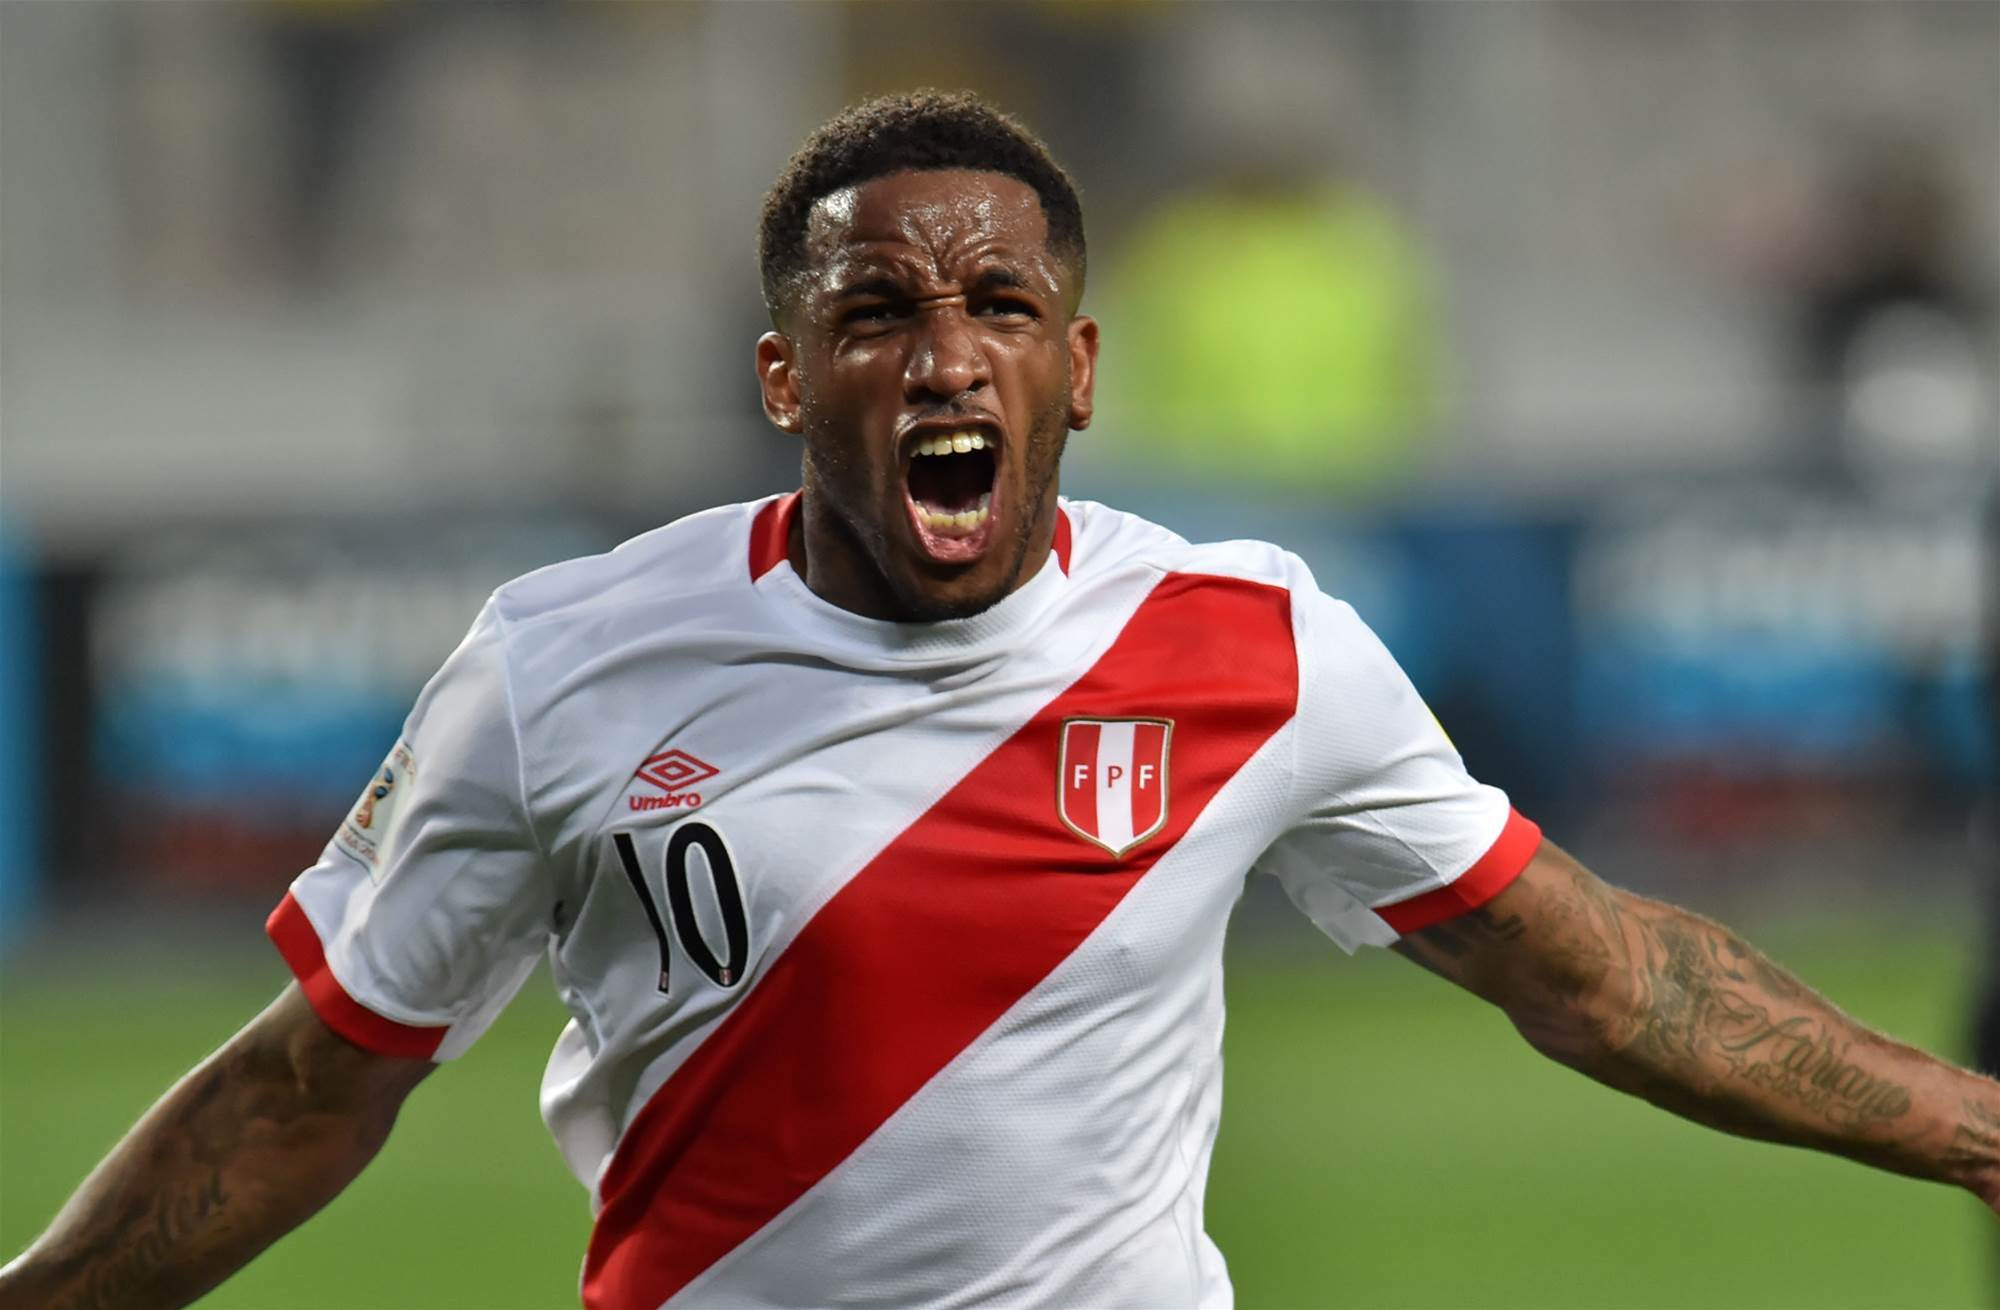 Peru: The Socceroos are the 'unknown'